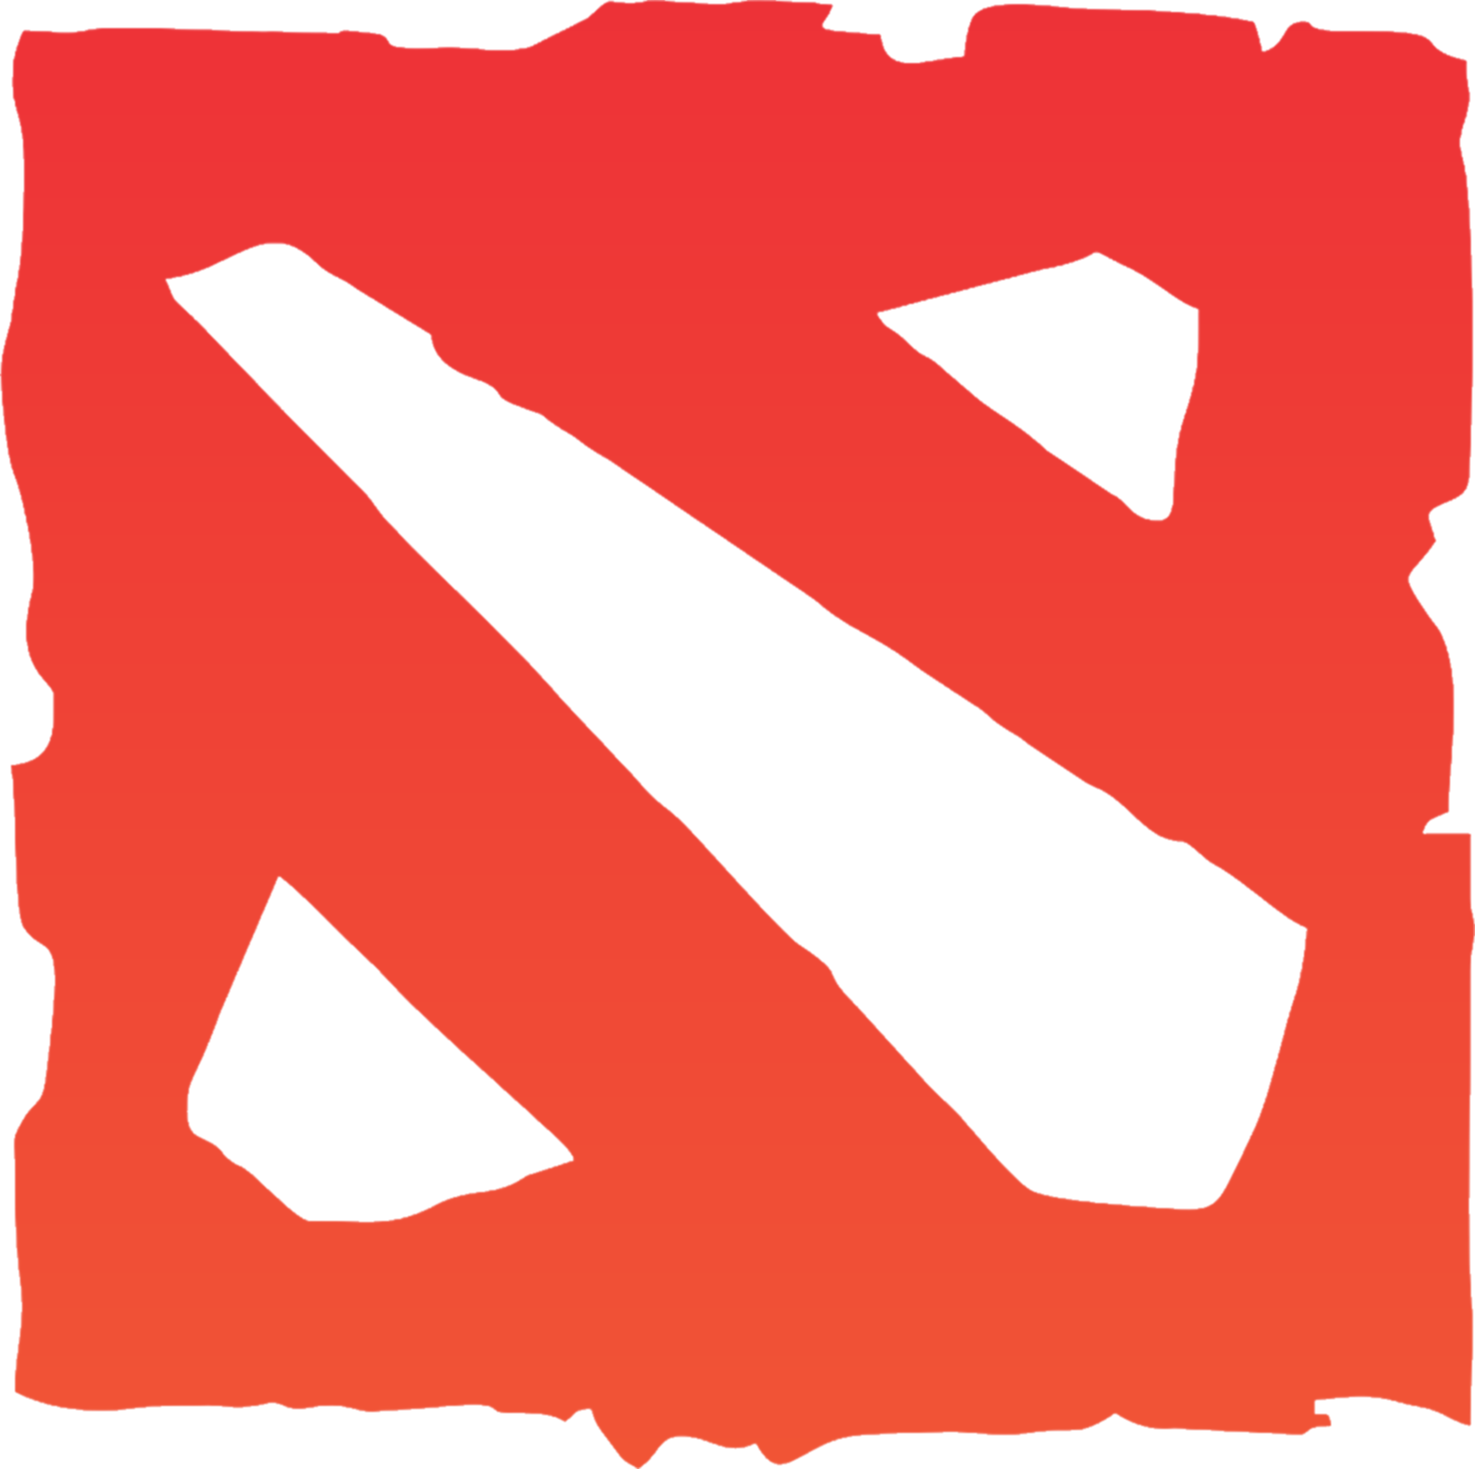 MidSoloKillnoob Dota 2 Team